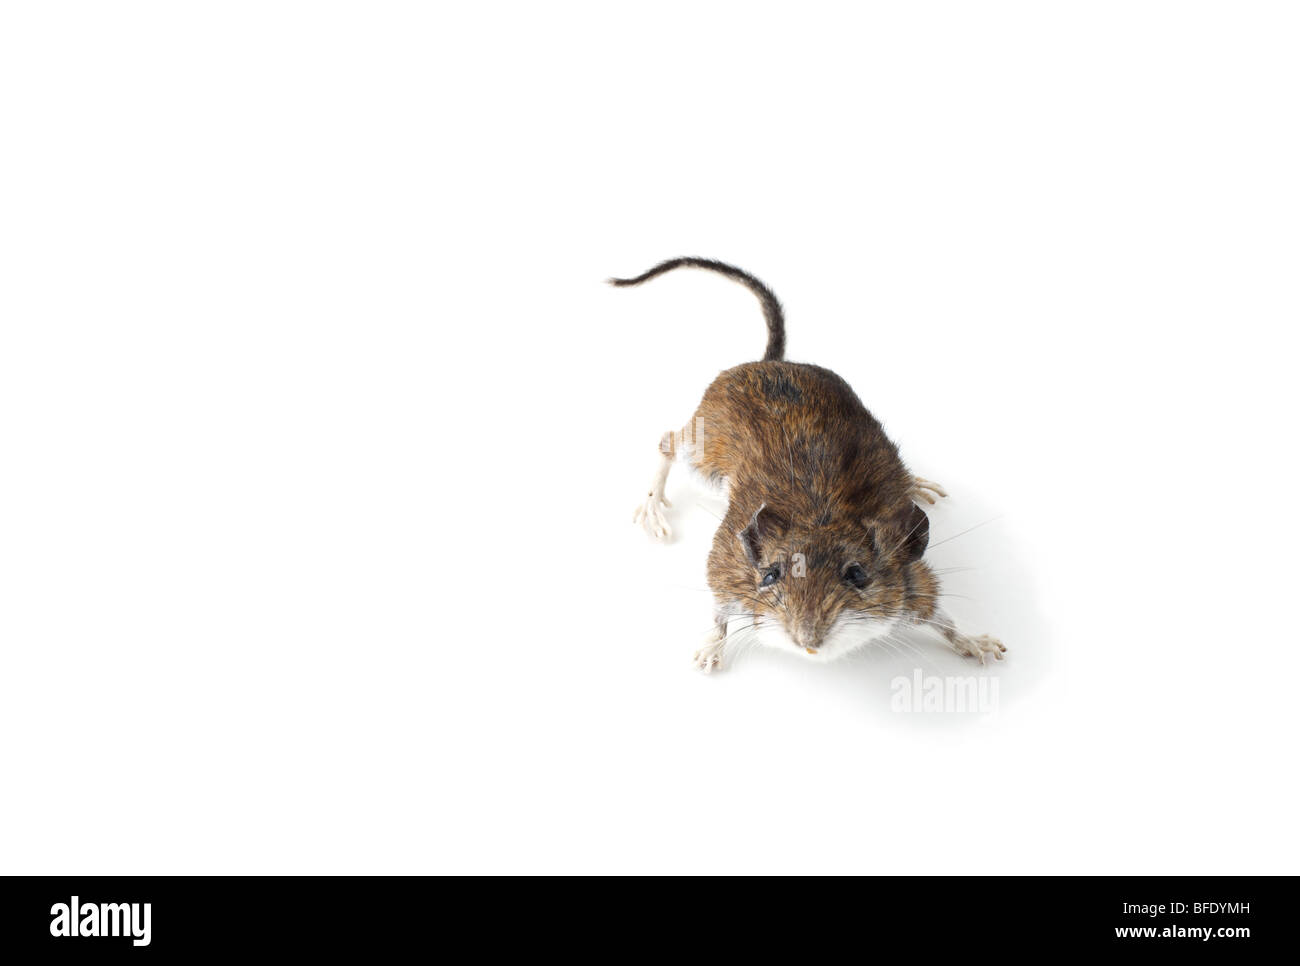 Studio shot of a Field Mouse on white - Stock Image